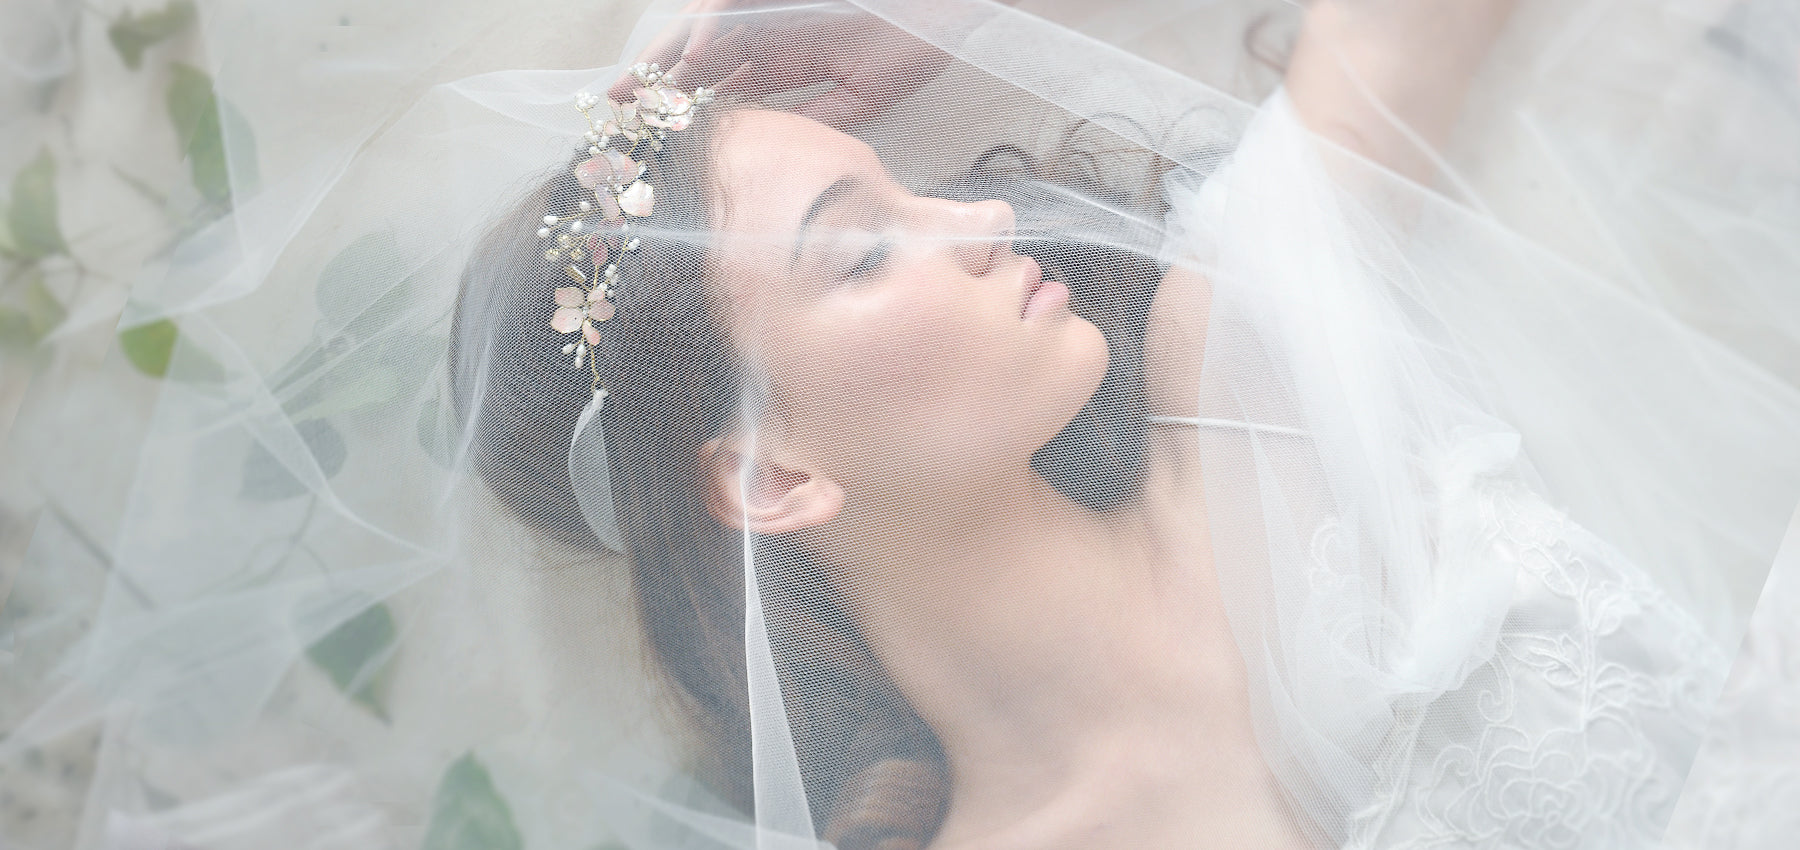 How To Guide To Buy Bridal Accessories Online